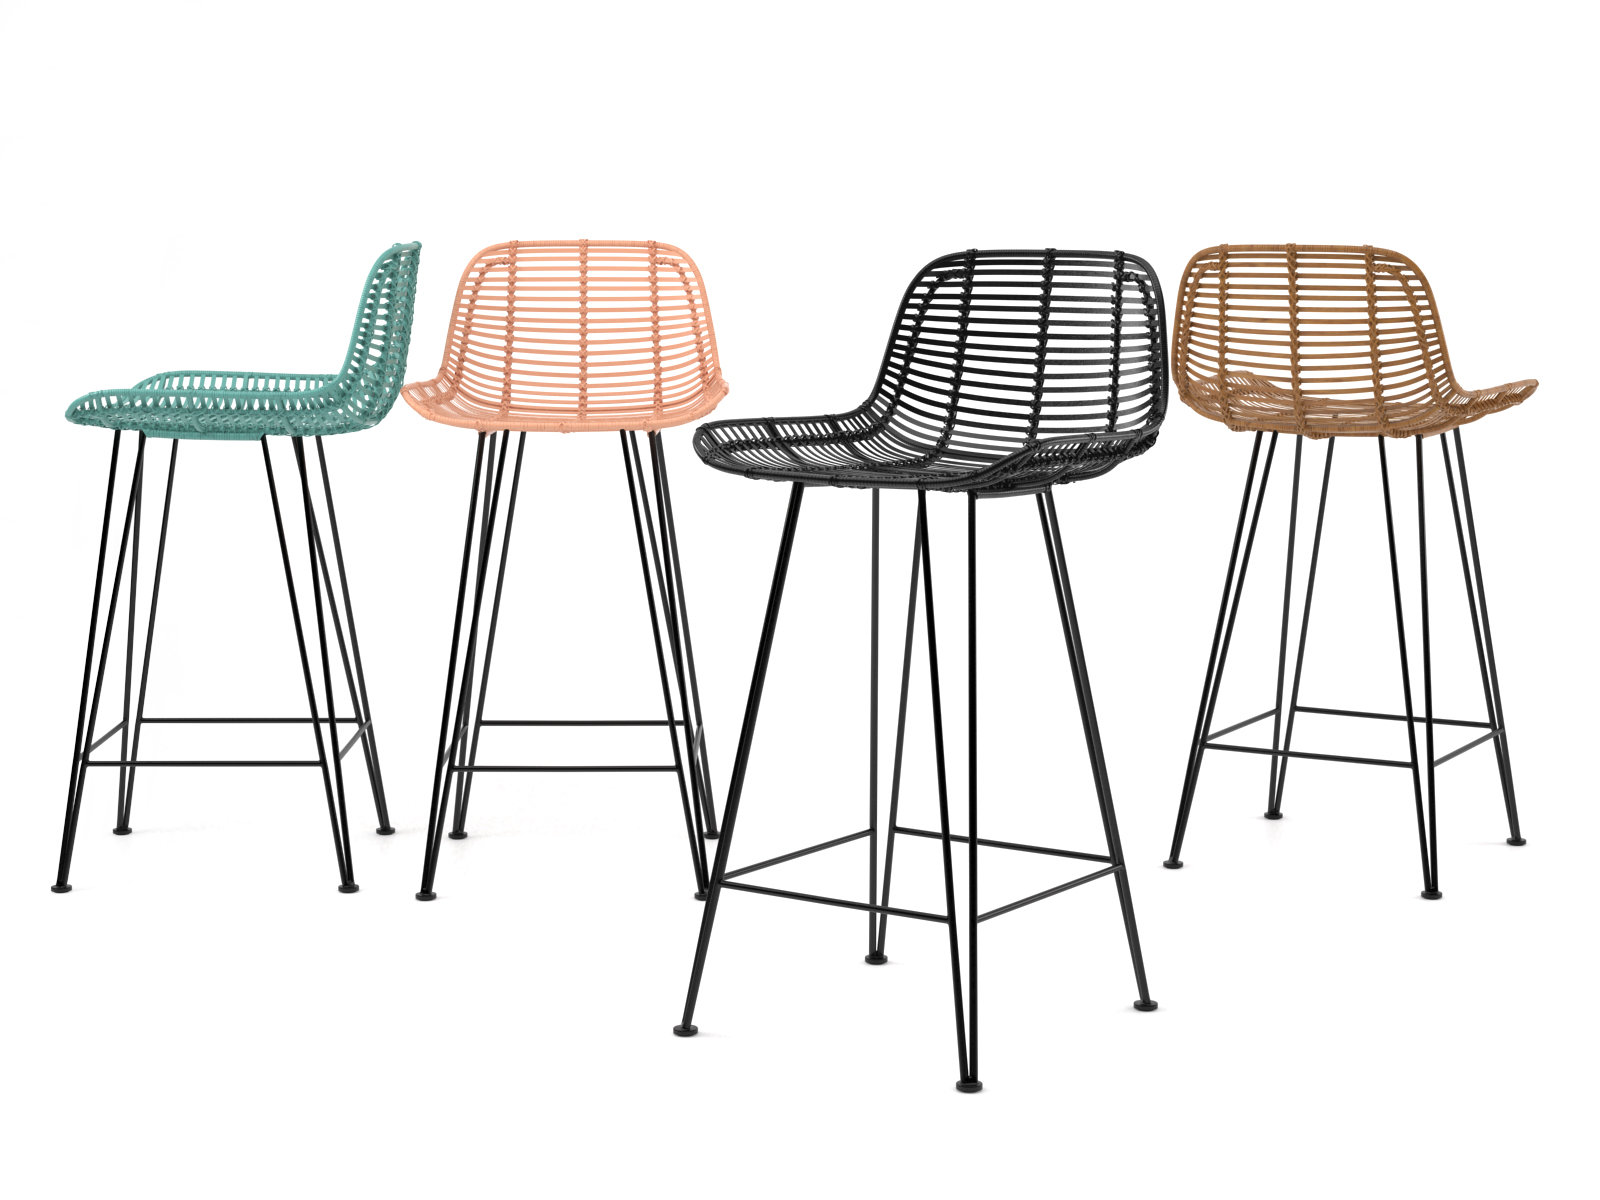 Rattan Barstool 3d model HK living : 7f717993f8991eb1060fd32449bd8c2b from www.designconnected.com size 1600 x 1200 jpeg 189kB